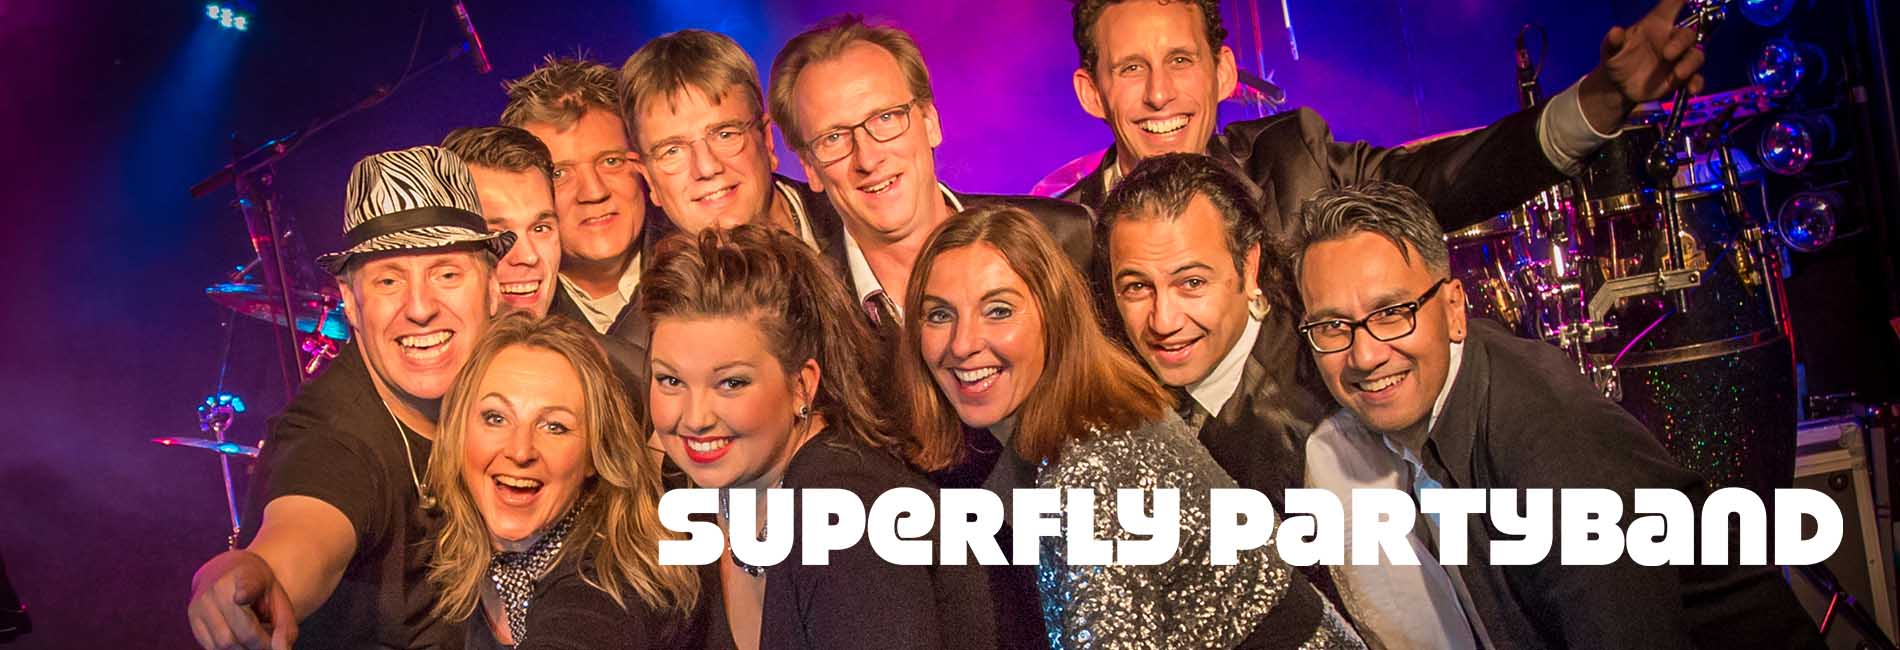 superfly-partyband-header